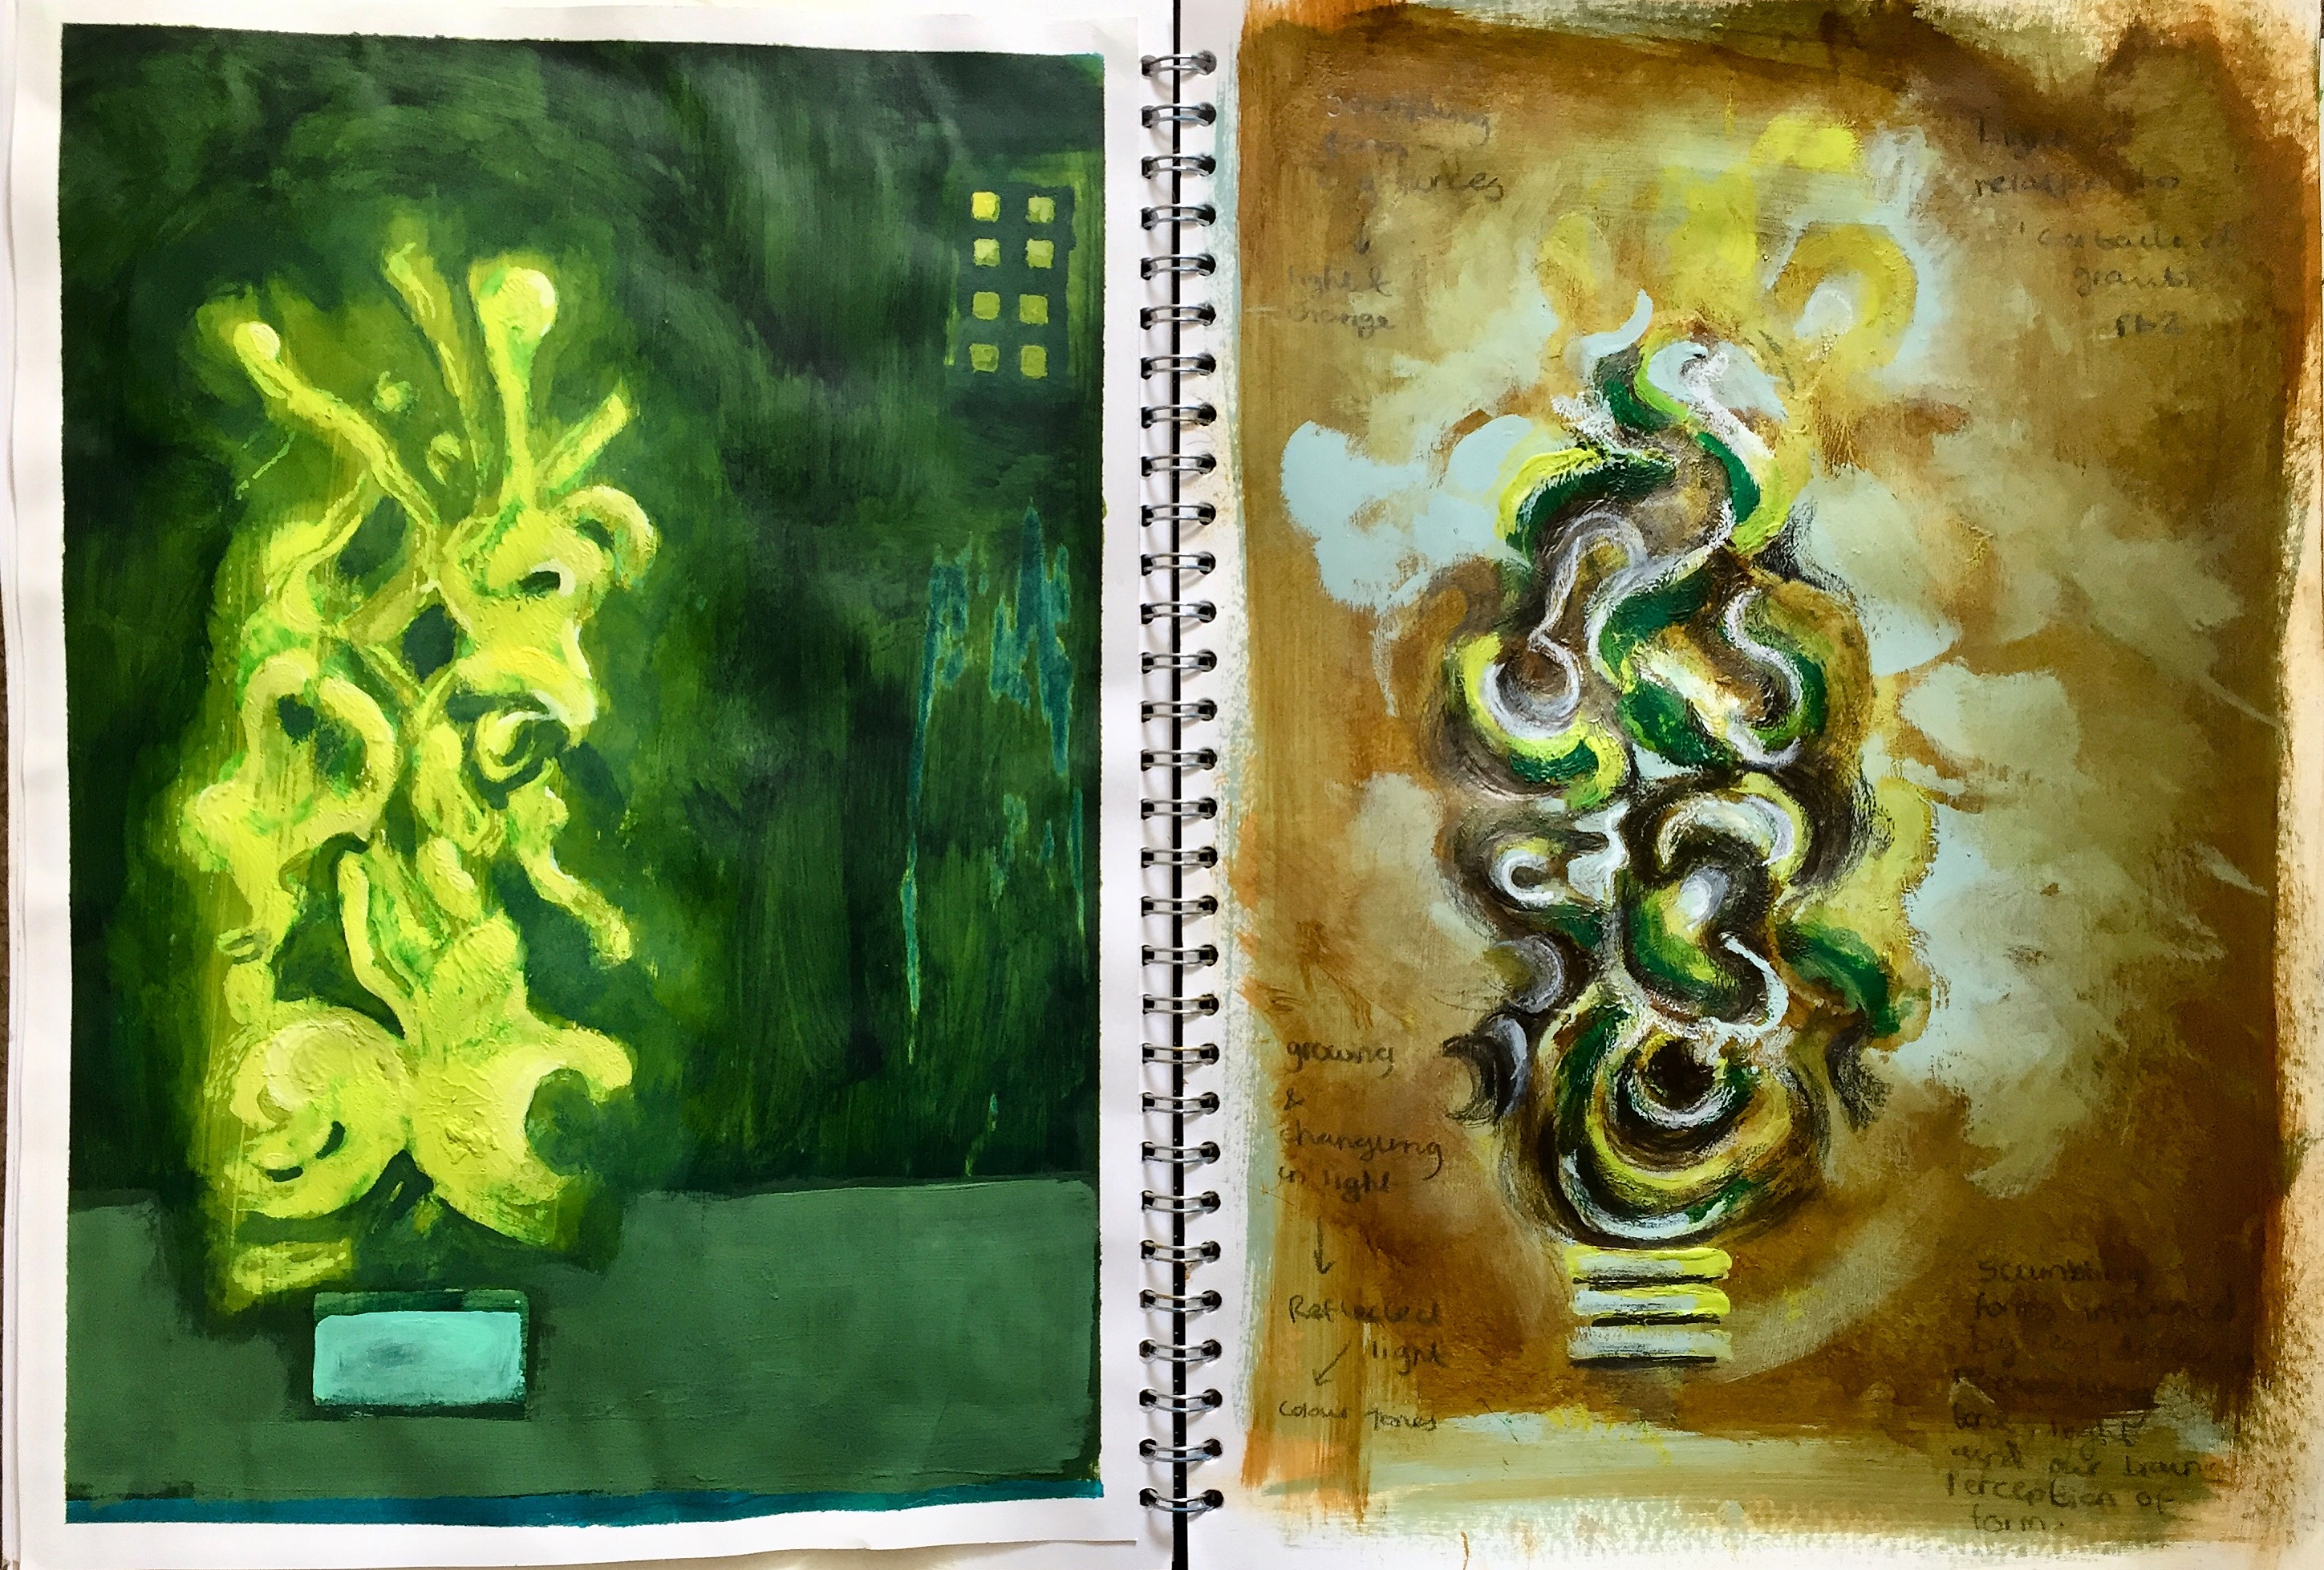 'Curtailed Growth' A3 Sketchbook pages (Acrylic Paintings)